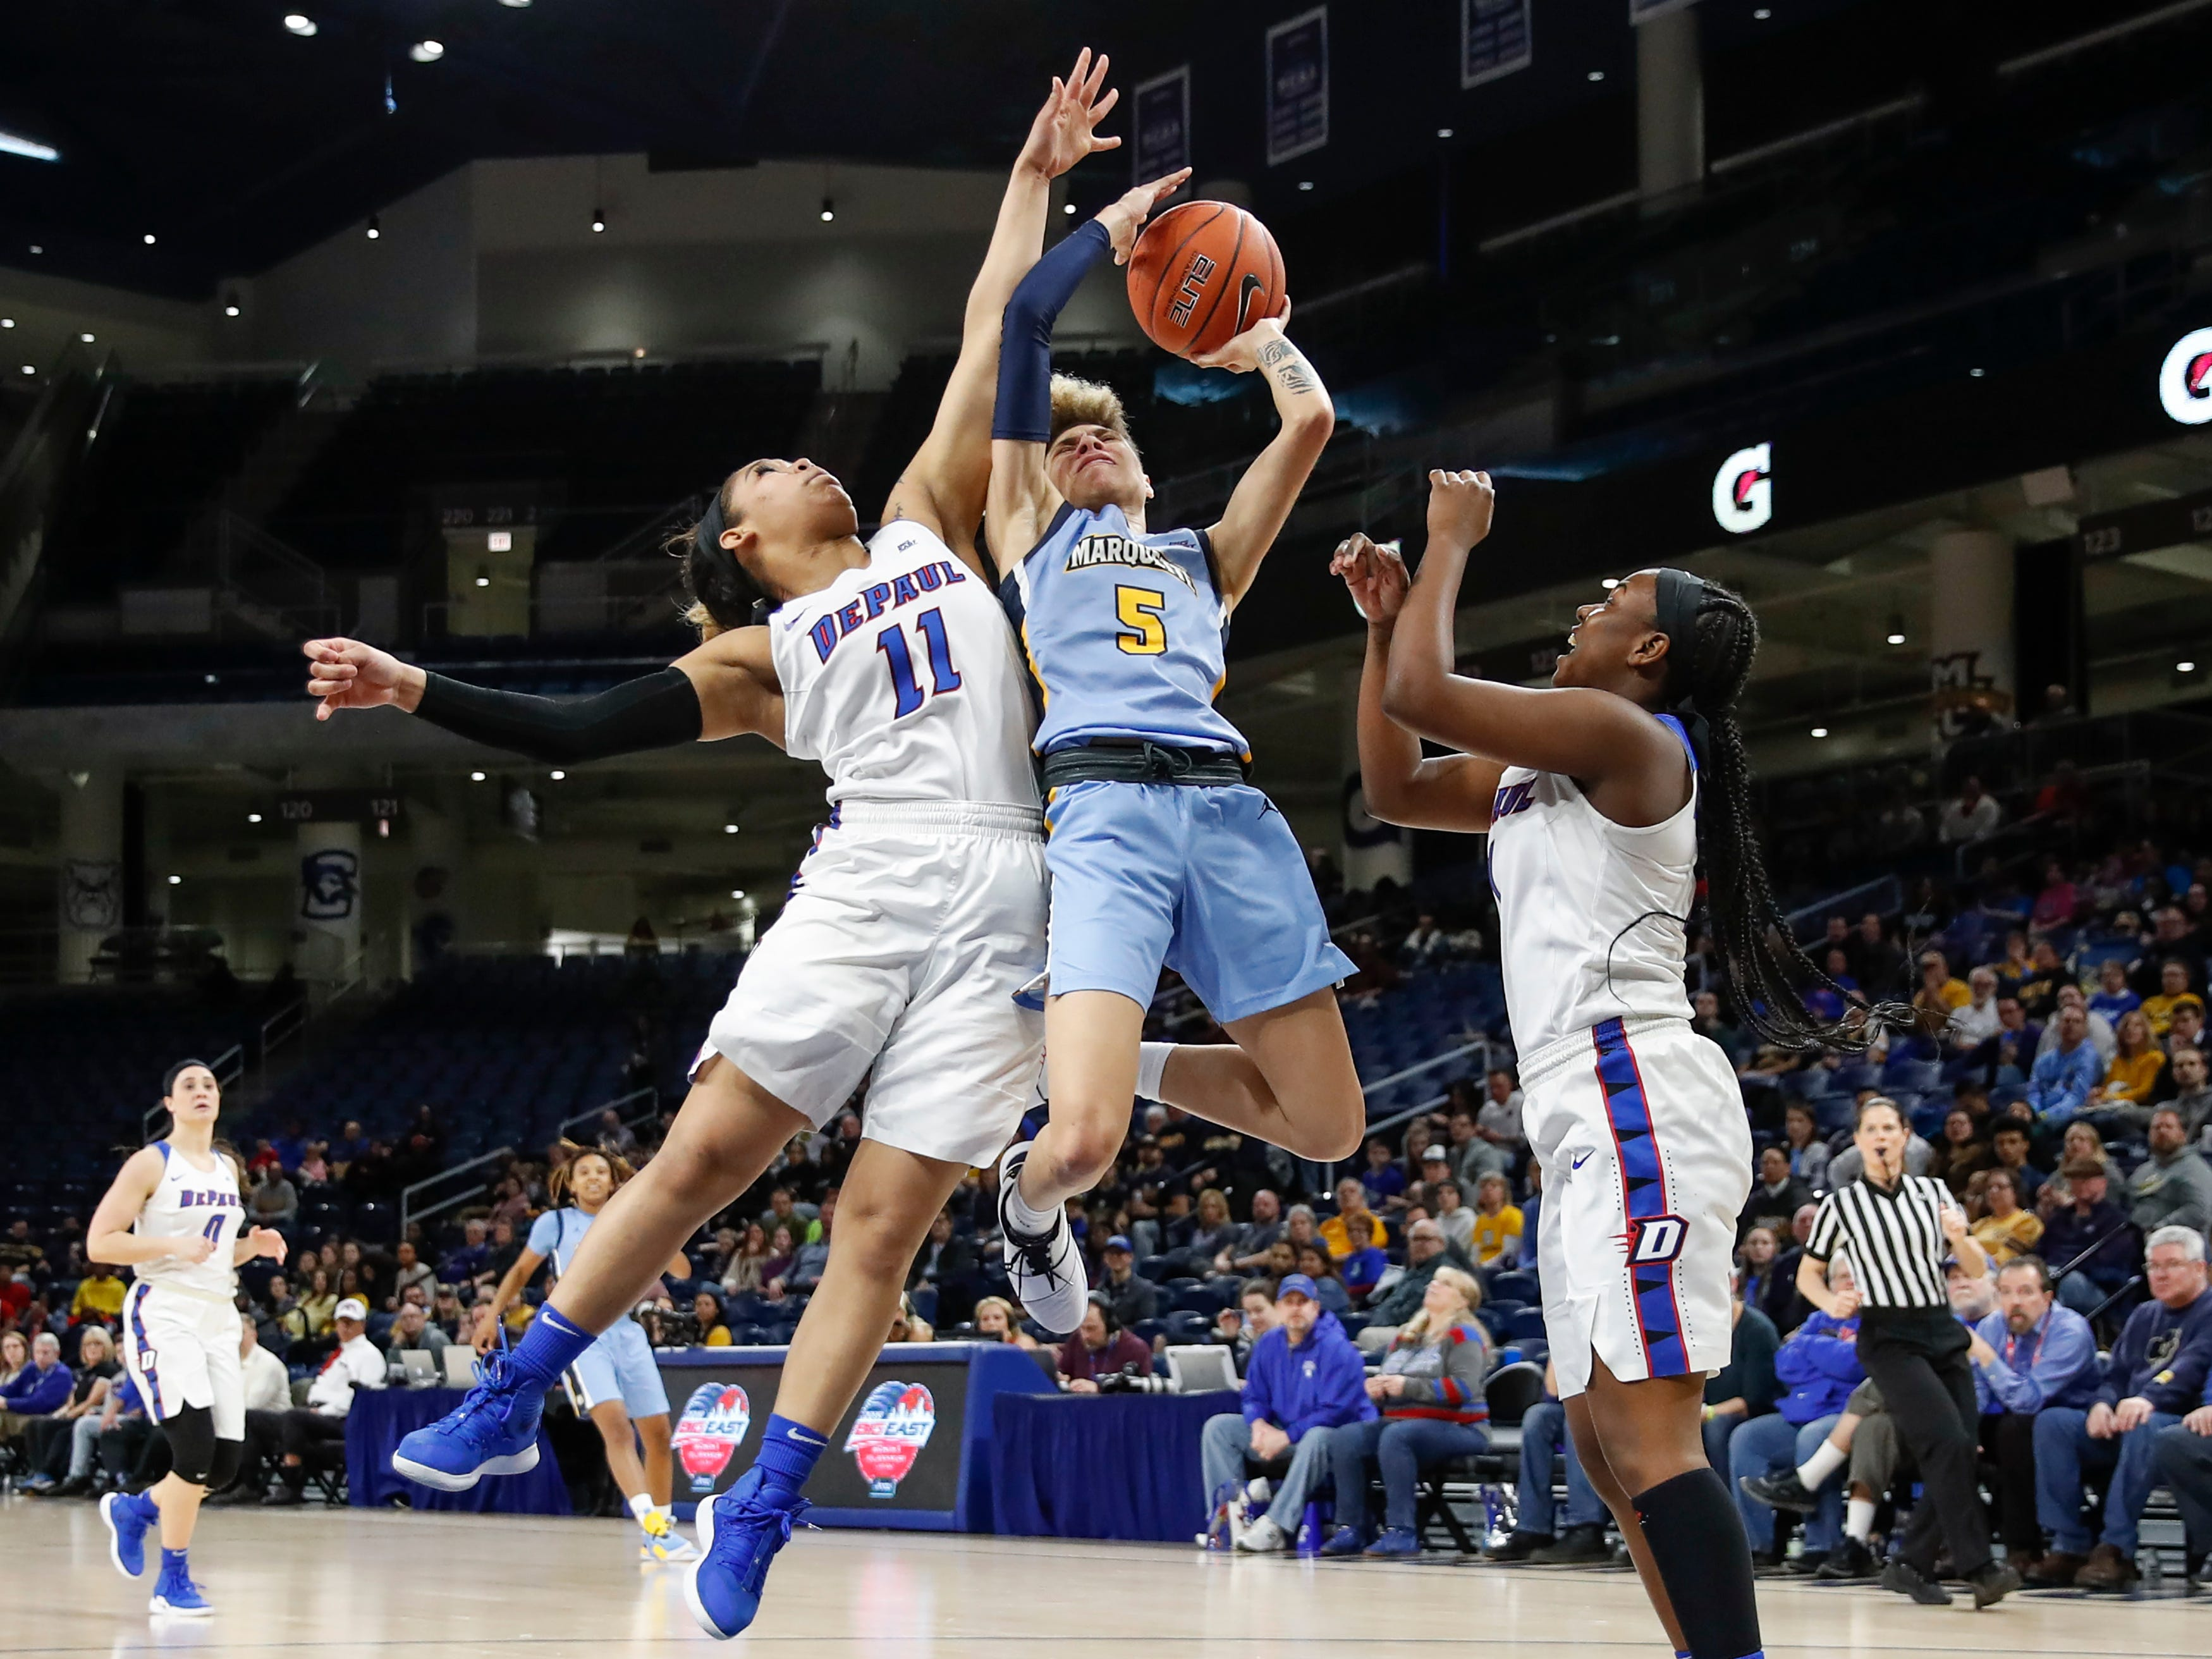 Marquette guard Natisha Hiedeman puts up a shot as she's fouled by DePaul guard Sonya Morris (11)during the first half.